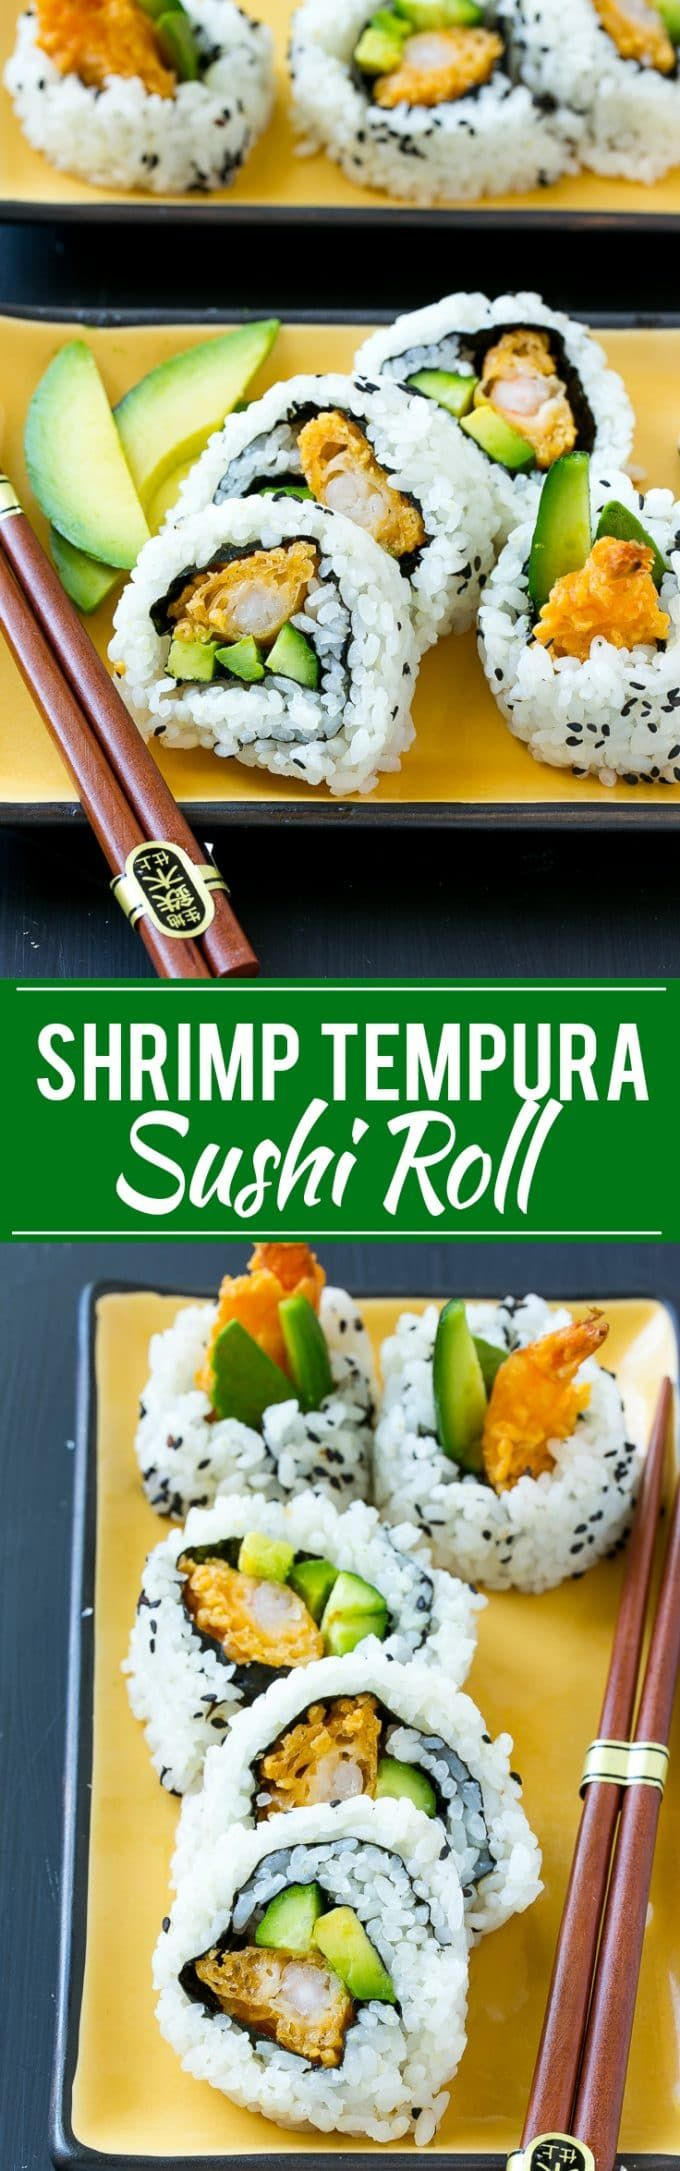 426 best Sushi images on Pinterest | Recipe, Board and Cook